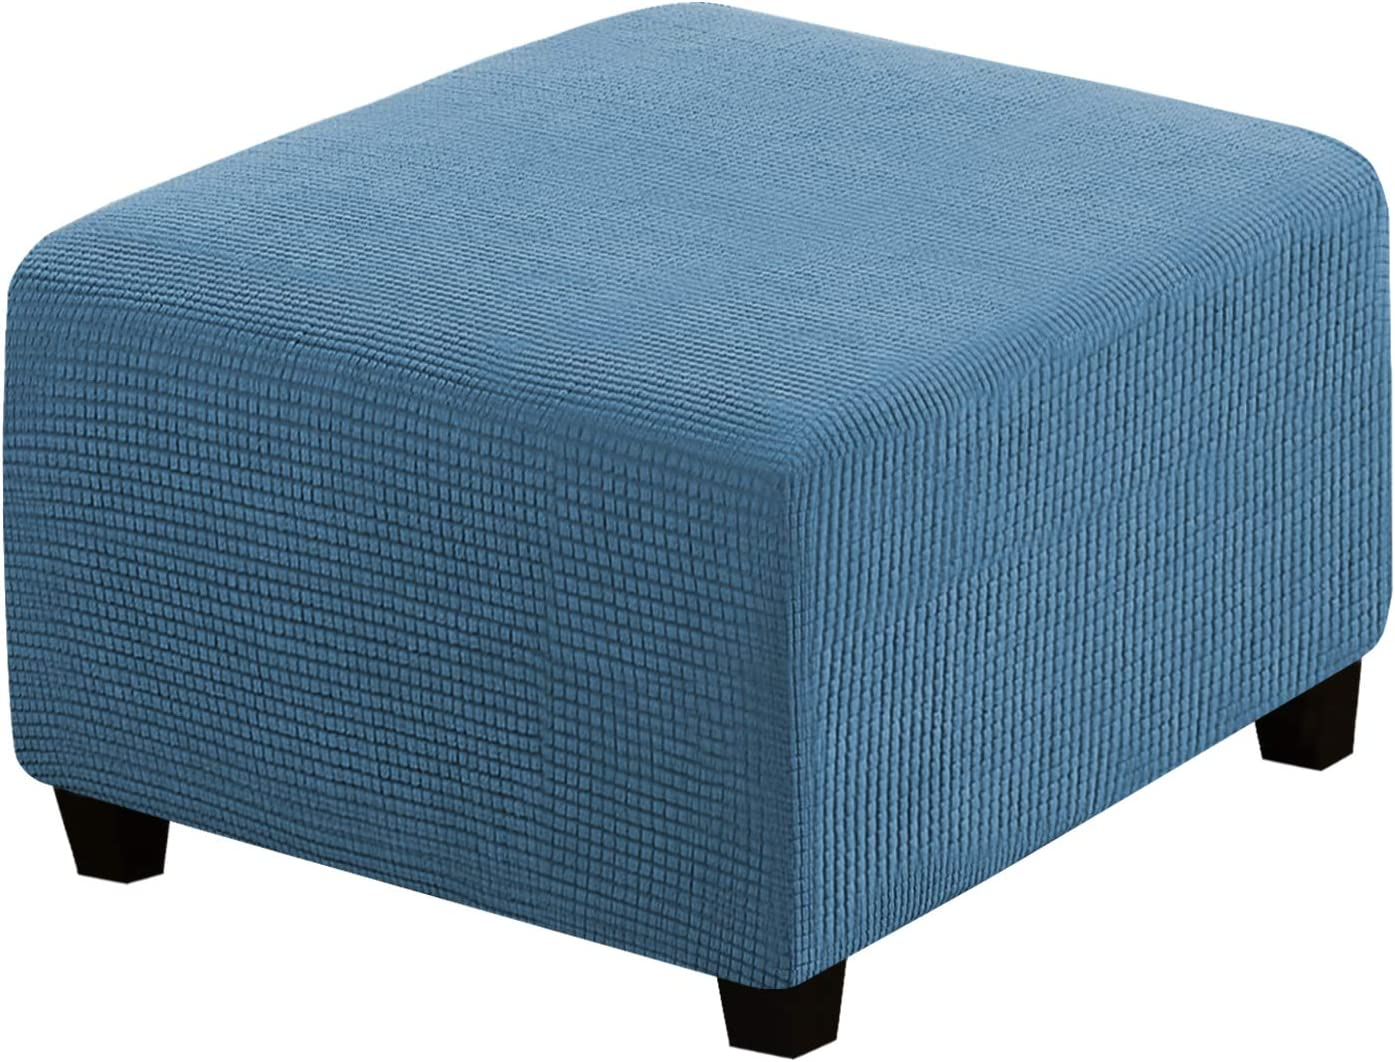 Square Ottoman Covers Ottoman Slipcovers Folding Storage Stool Furniture Protector Form Fit with Elastic Bottom, Stretch High Spandex Small Checks Jacquard Fabric, Dusty Blue